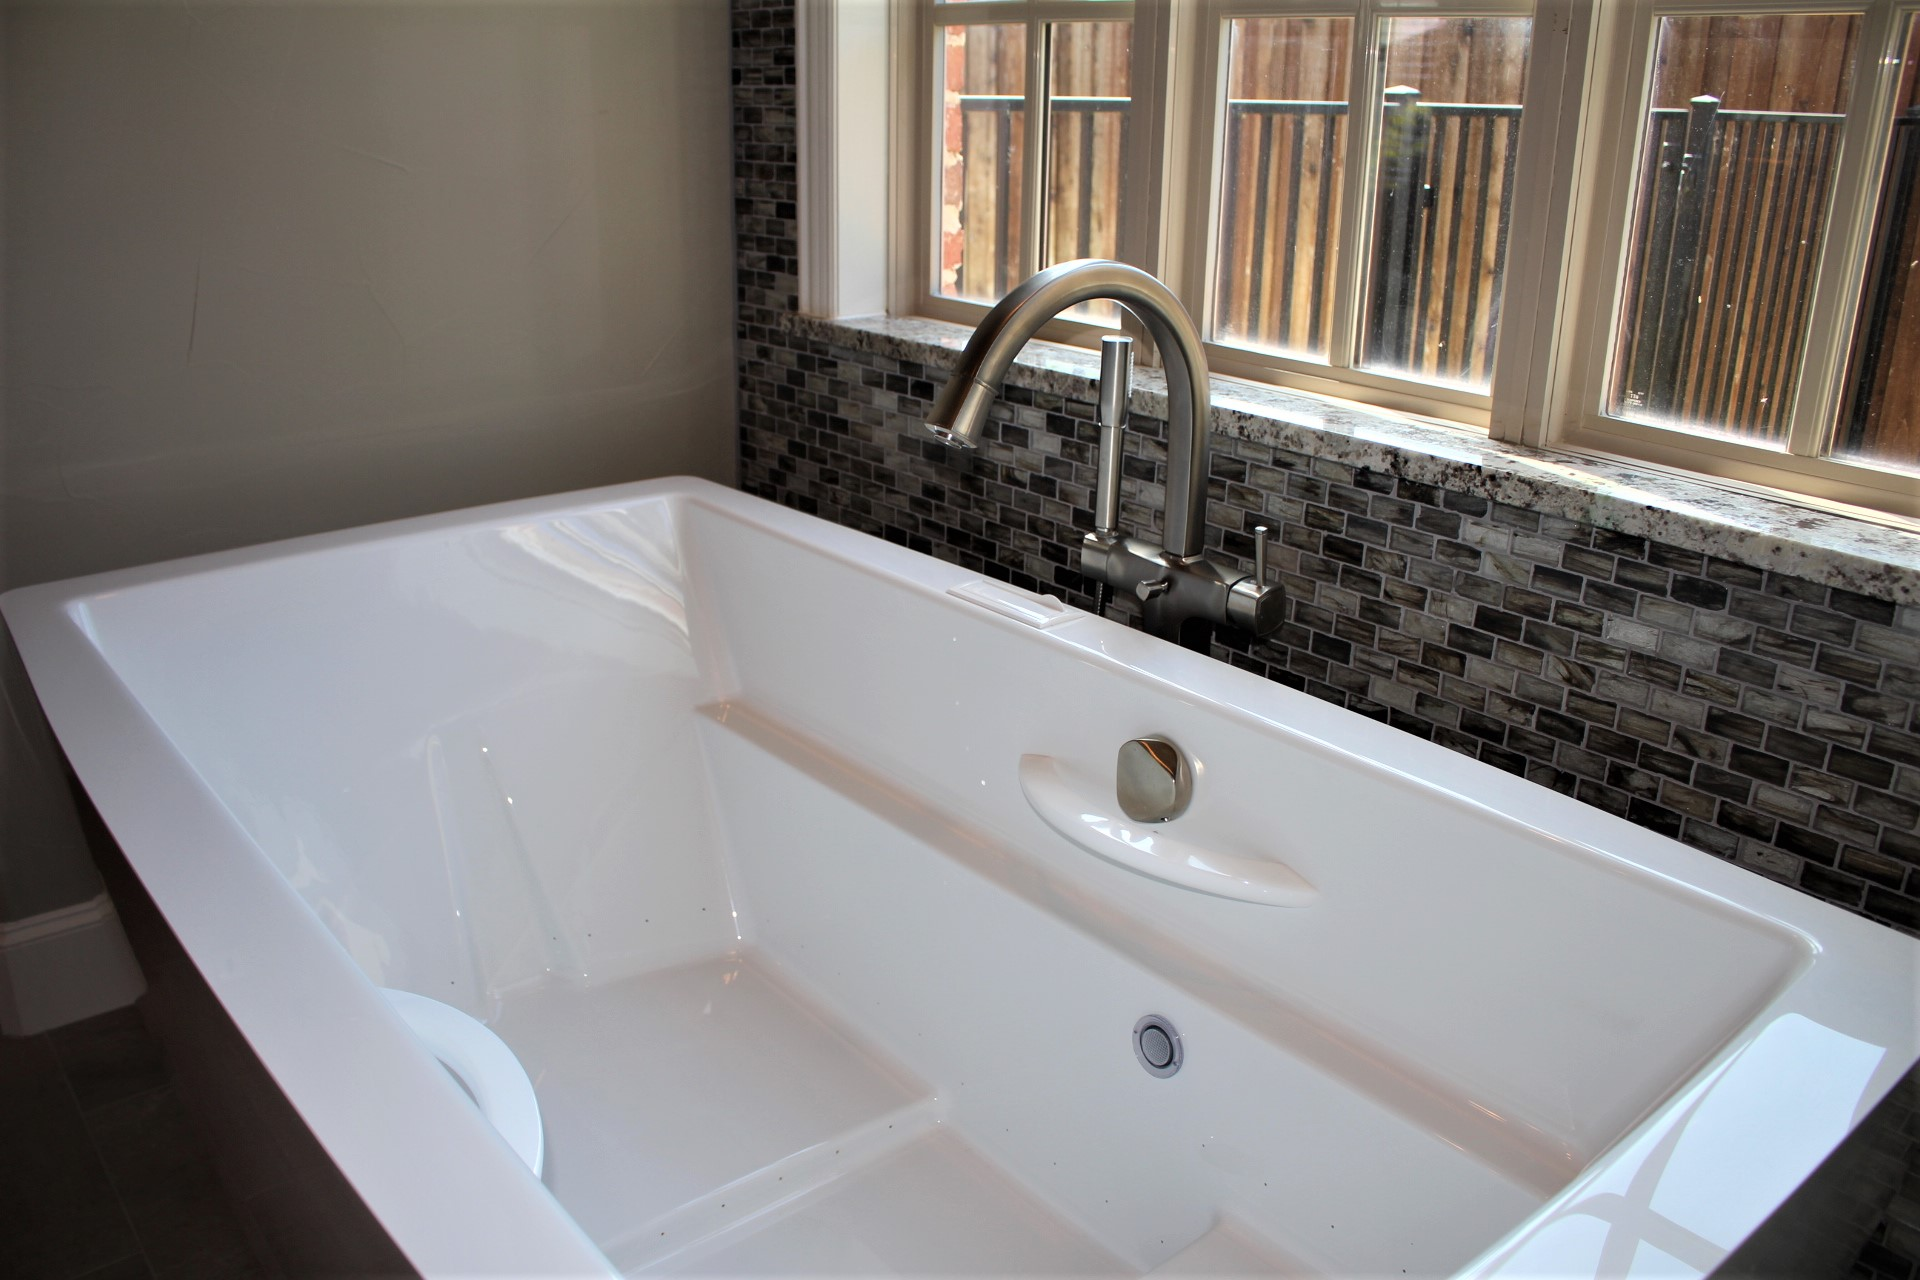 Bathroom Remodeling Dallas Bathroom Makeover Dallas Remodeling - Bathroom renovation dallas